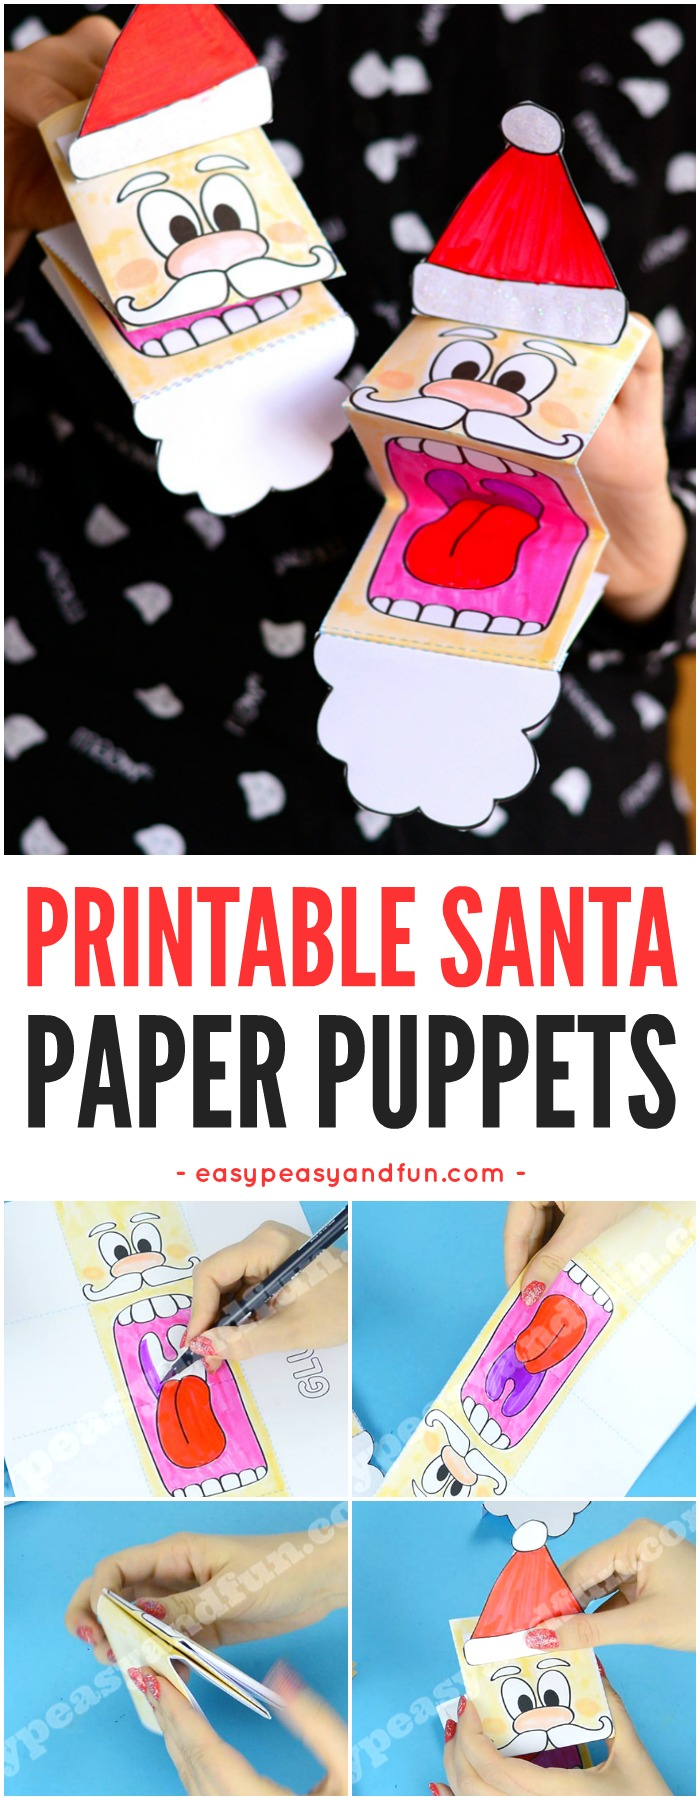 Printable Santa Paper Puppet. Fun Christmas craft activity for kids to make.